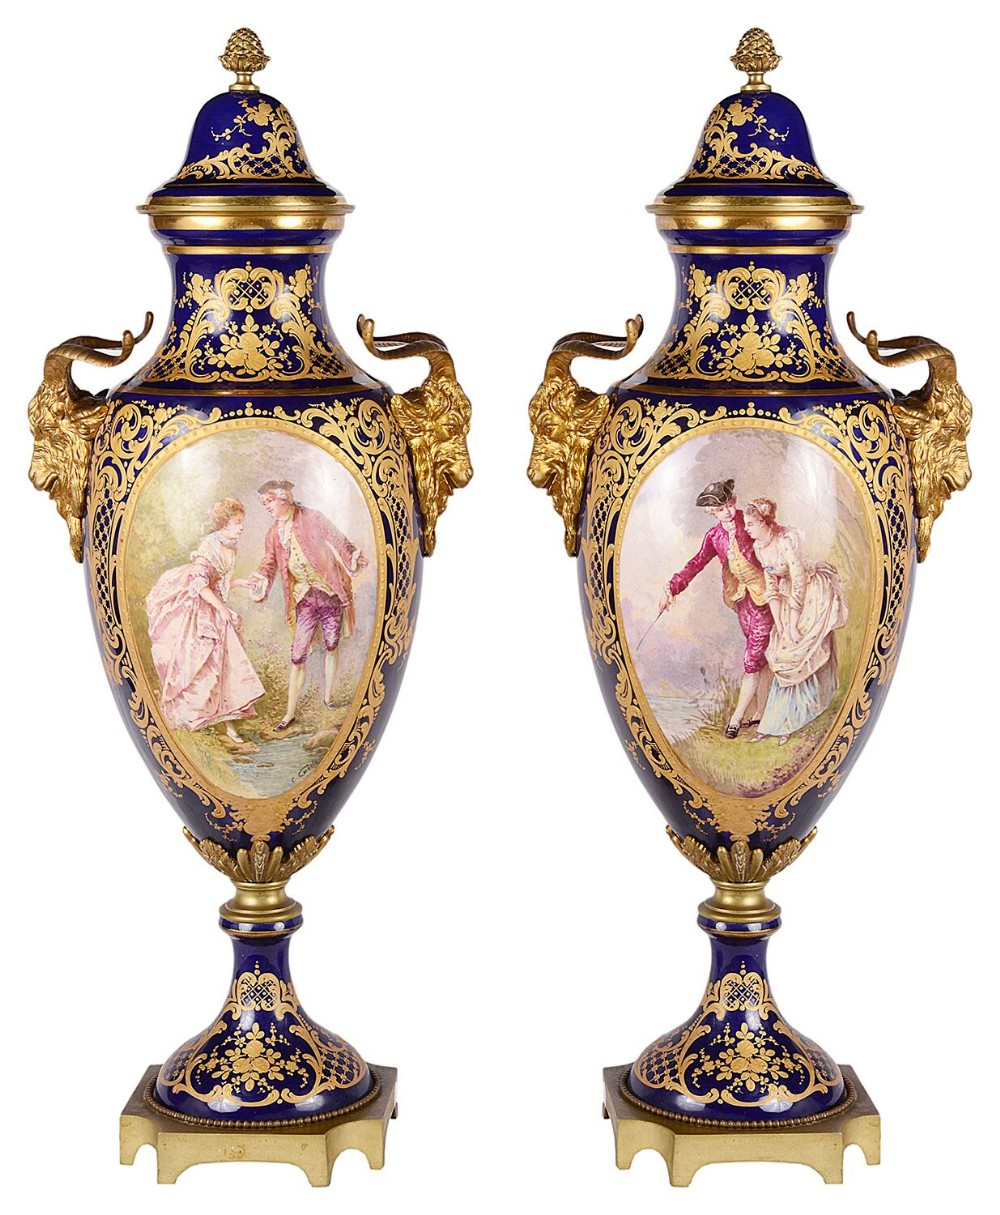 pair of 19th century sevres style vases